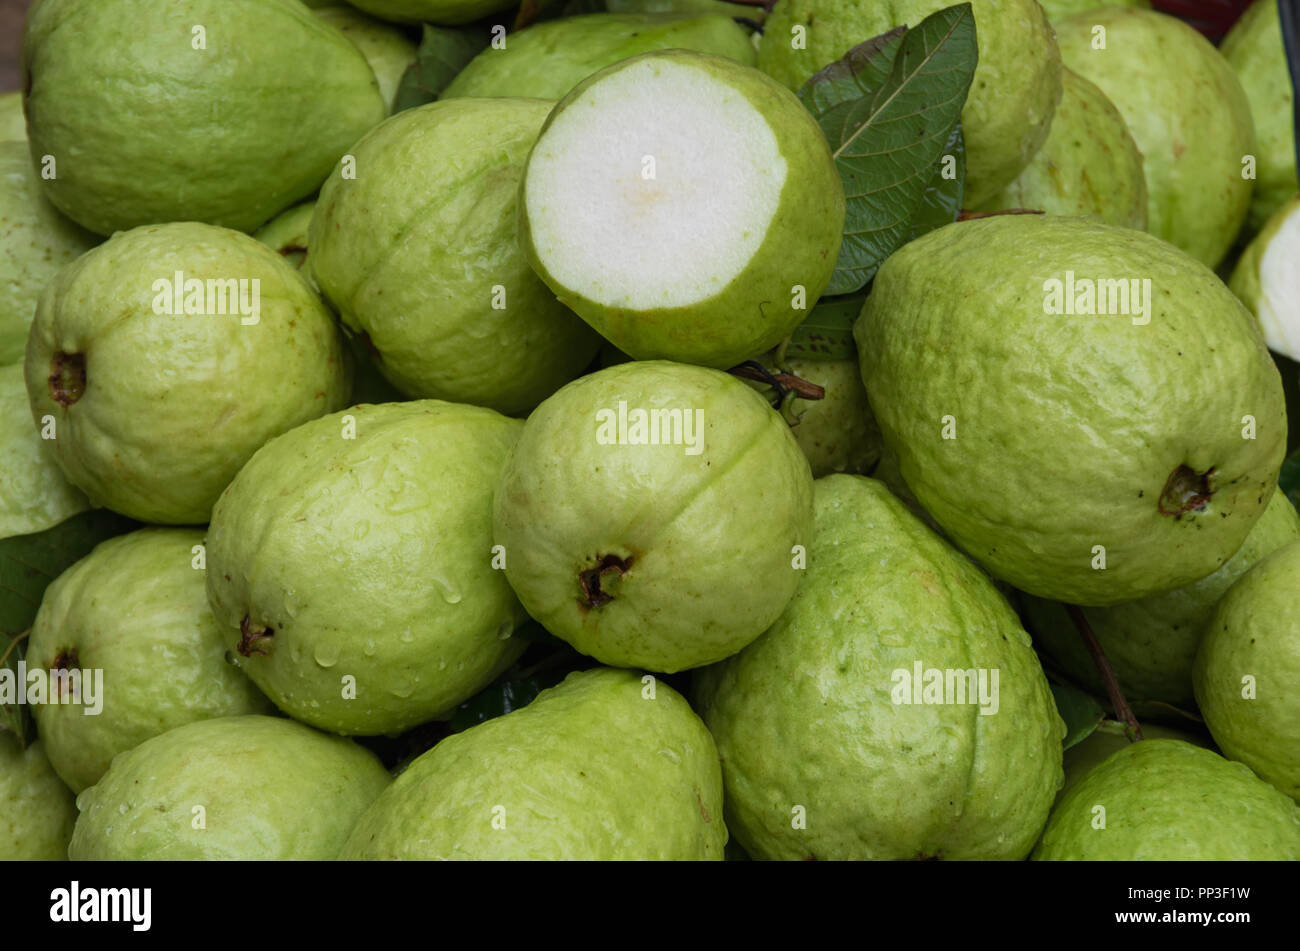 Background with guava fruit grown in tropics, picture use